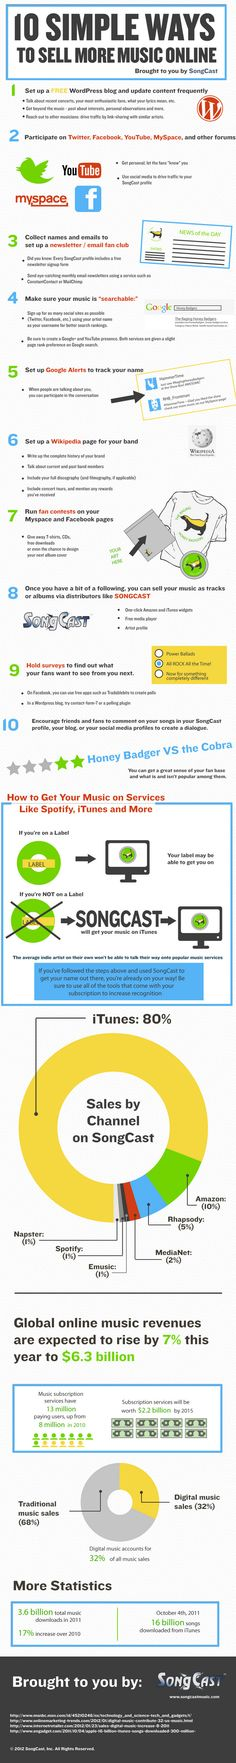 10 maneras de vender más música online #infografia #infographic #internet #ecommerce #marketing